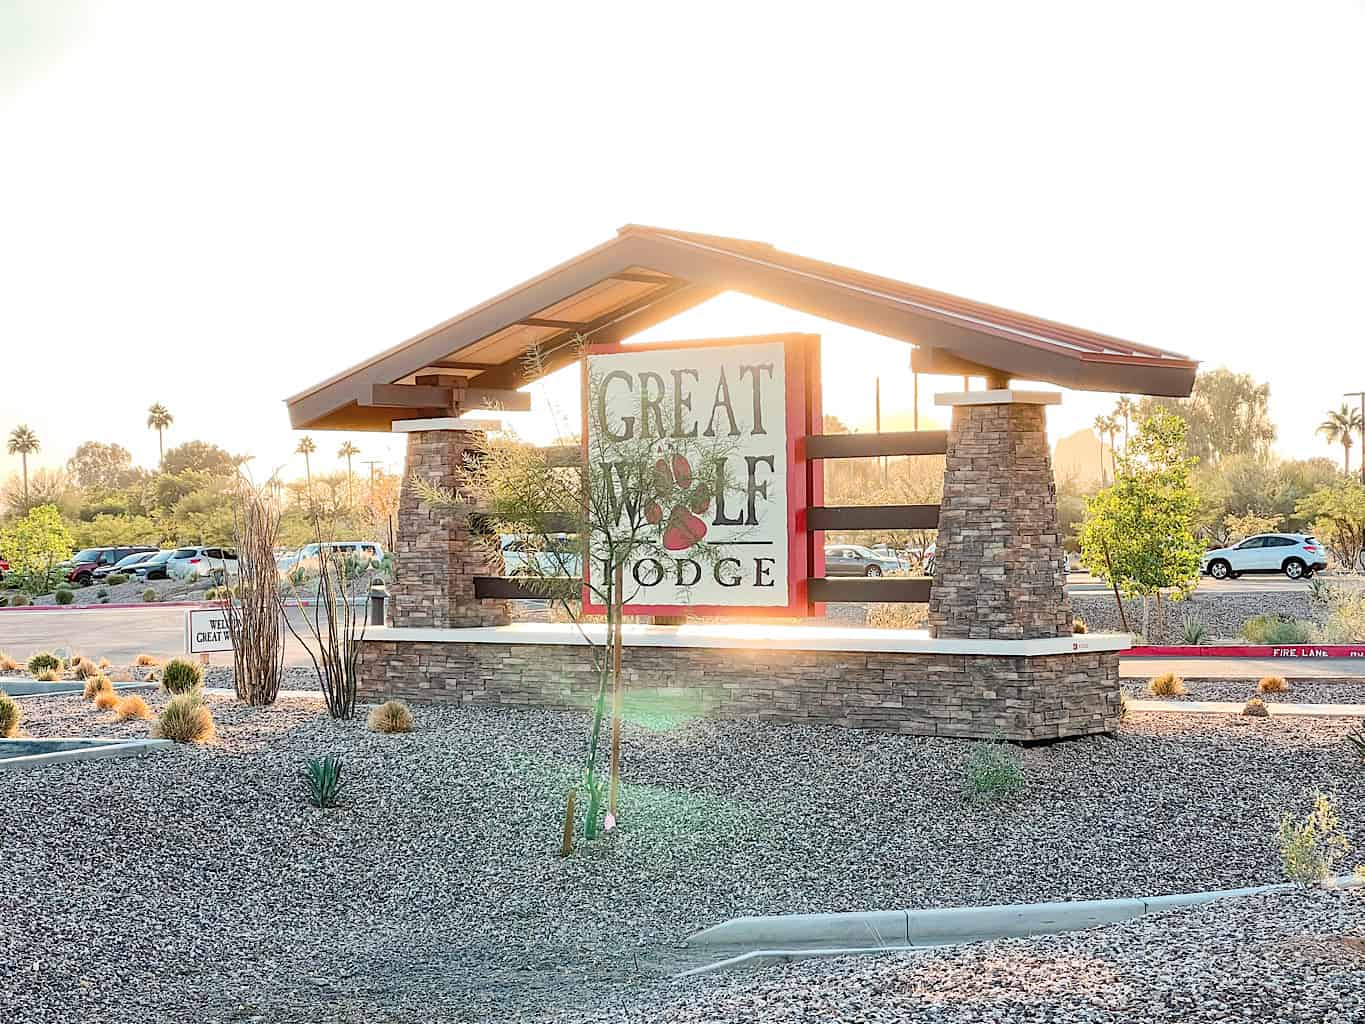 Street sign for Great Wolf Lodge in Arizona